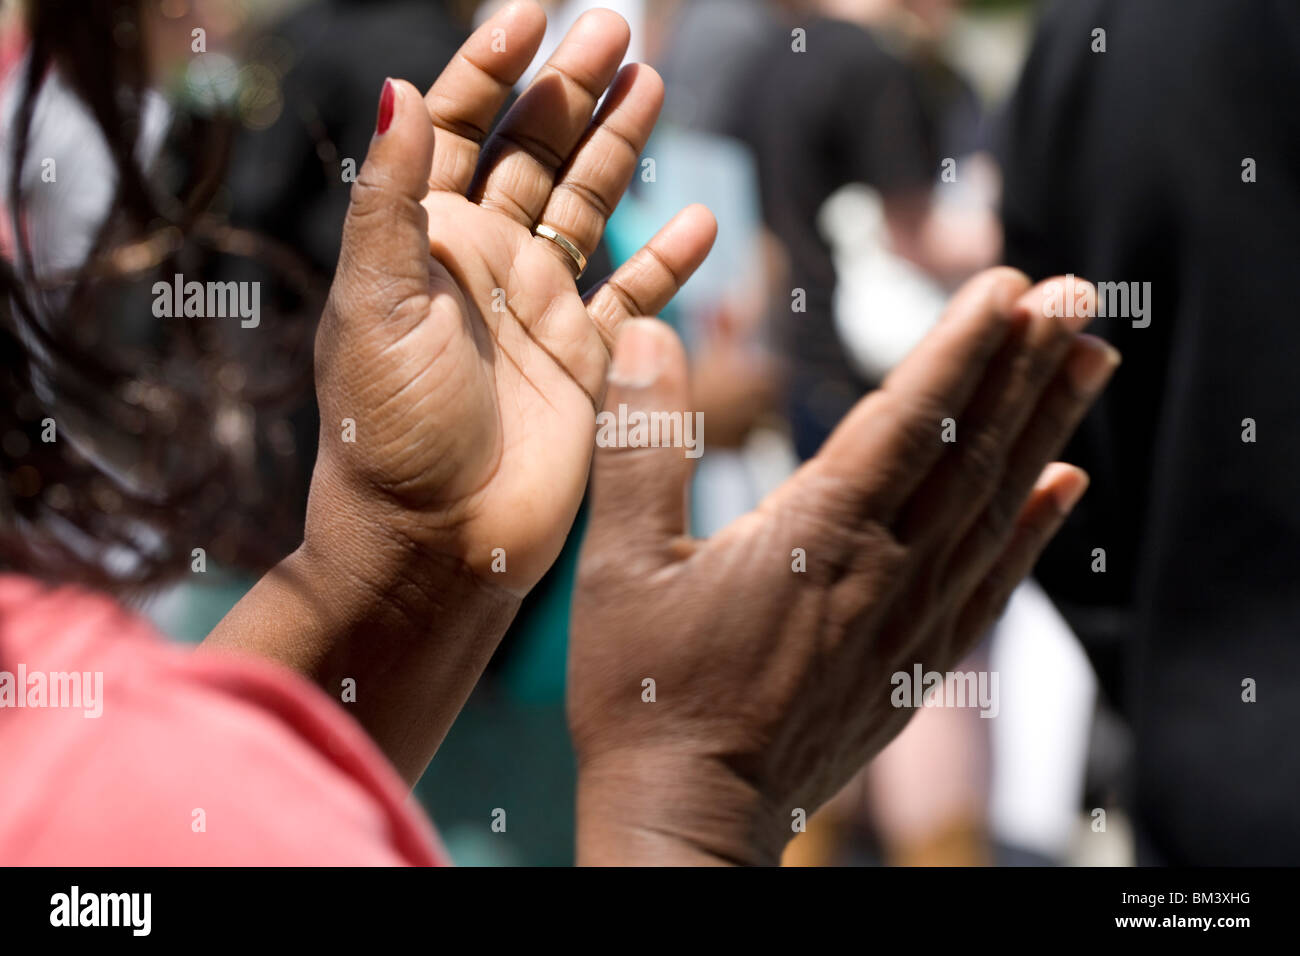 Hands Clapping Stock Photo